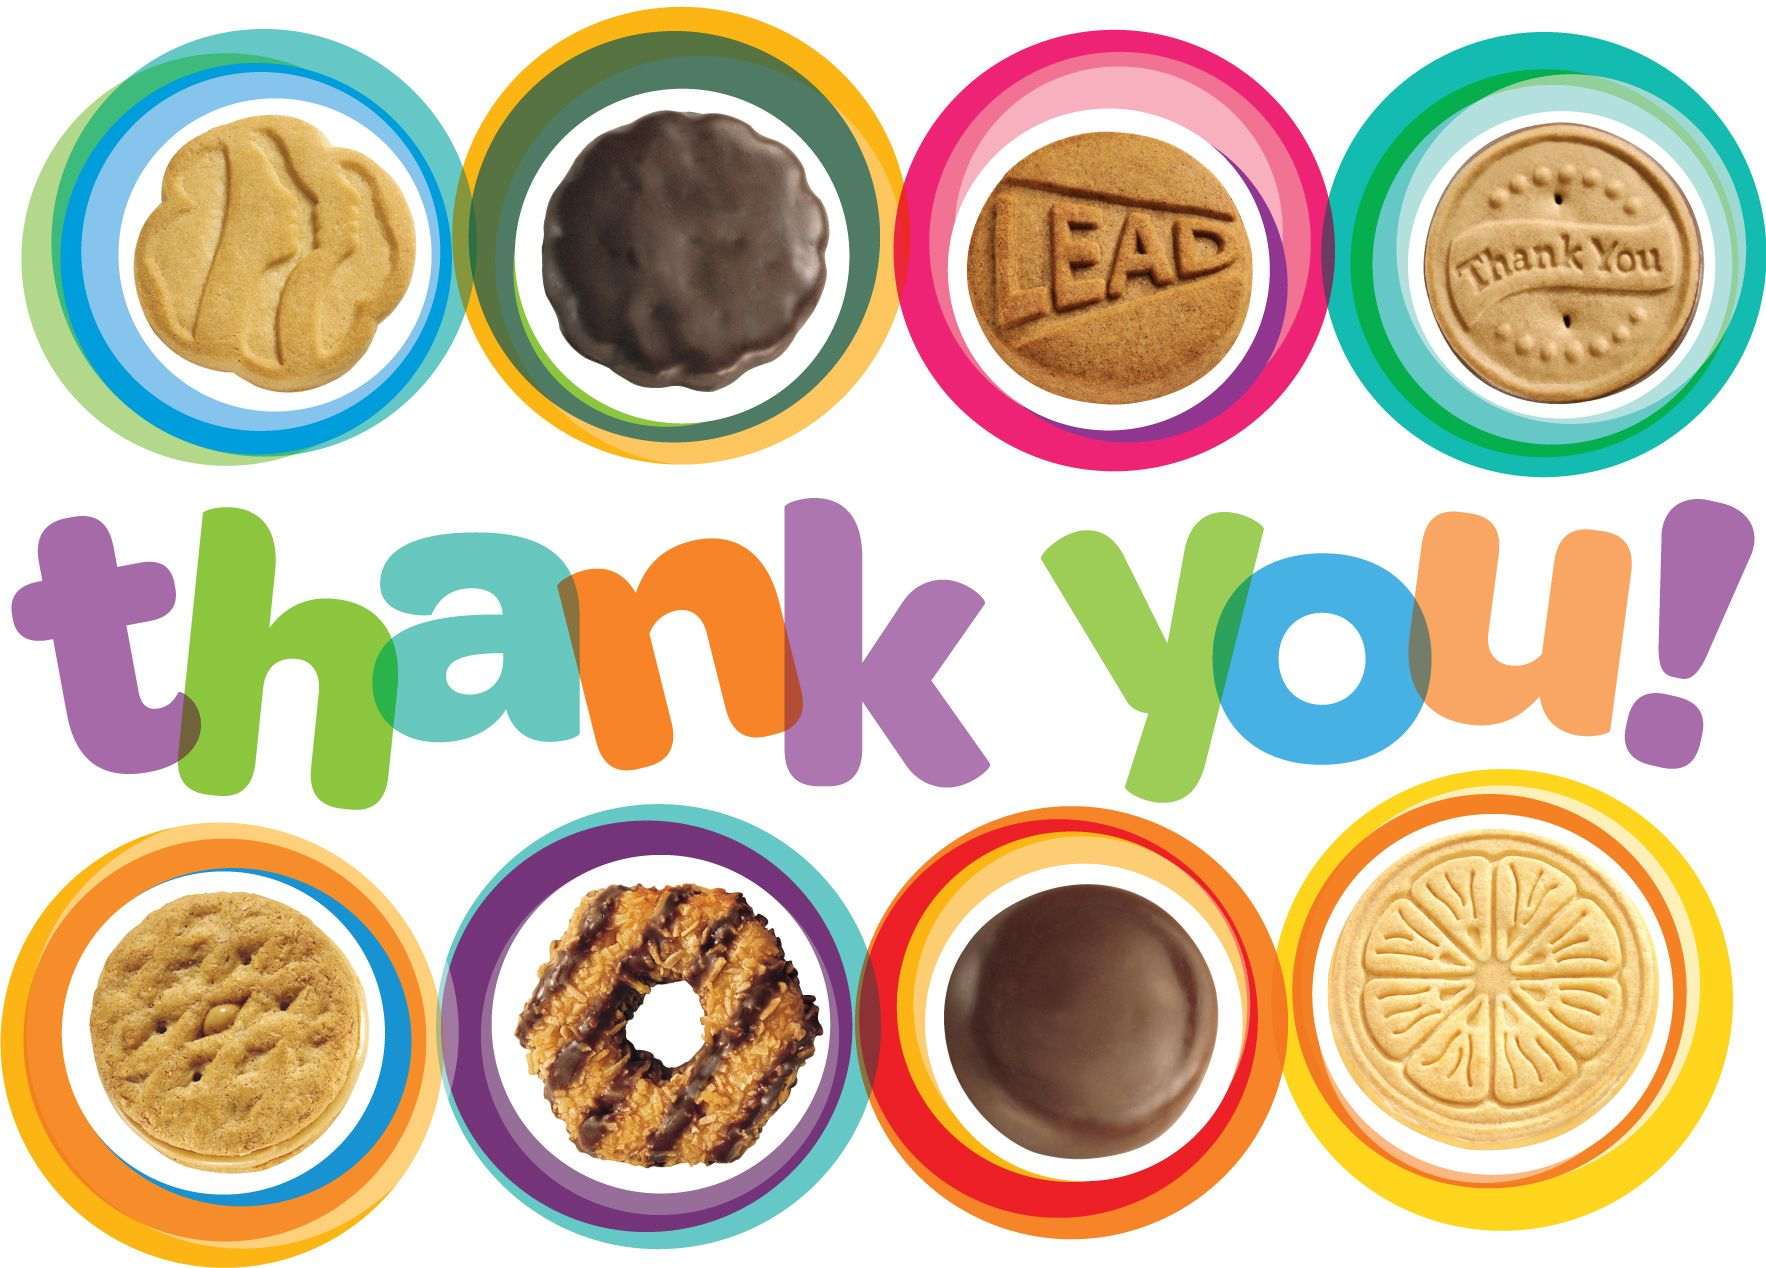 Thank You Cards Girl Scout Cookies Clip Art Clipart.